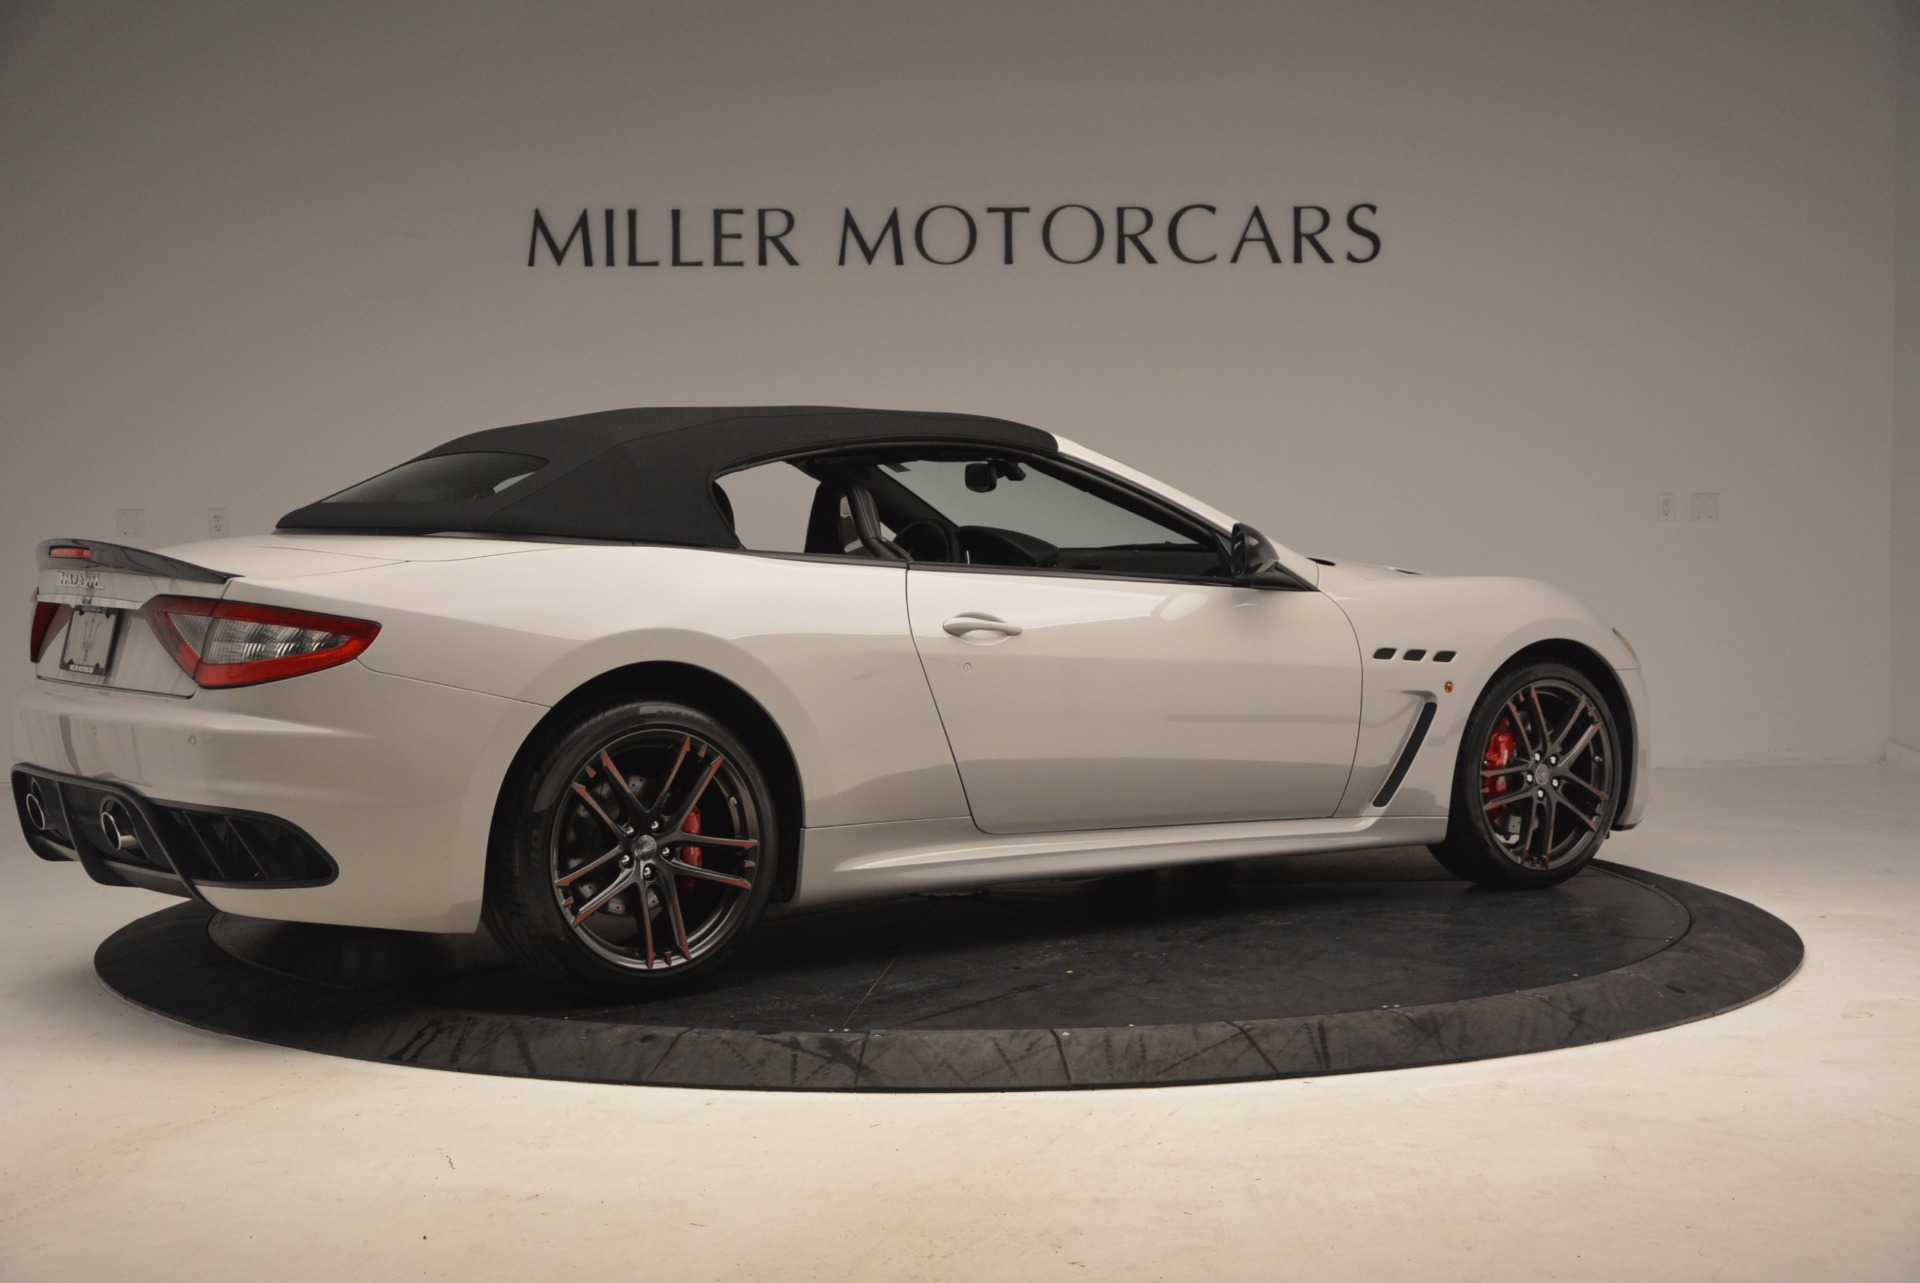 Used 2015 Maserati GranTurismo MC Centennial For Sale In Westport, CT 1107_p20